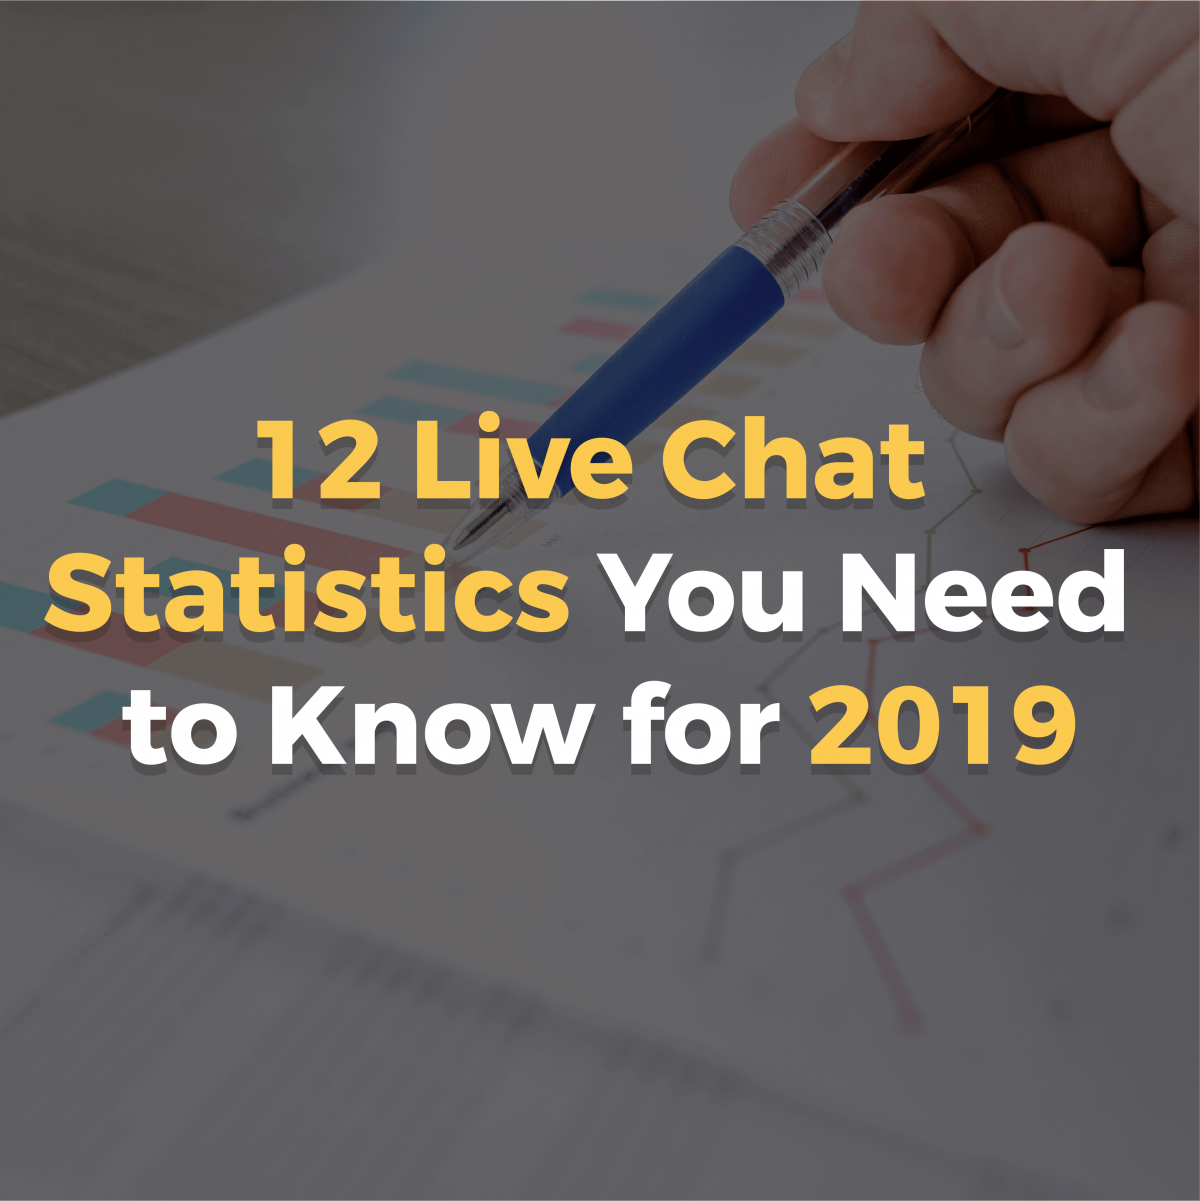 12 Live Chat Statistics You Need to Know for 2019